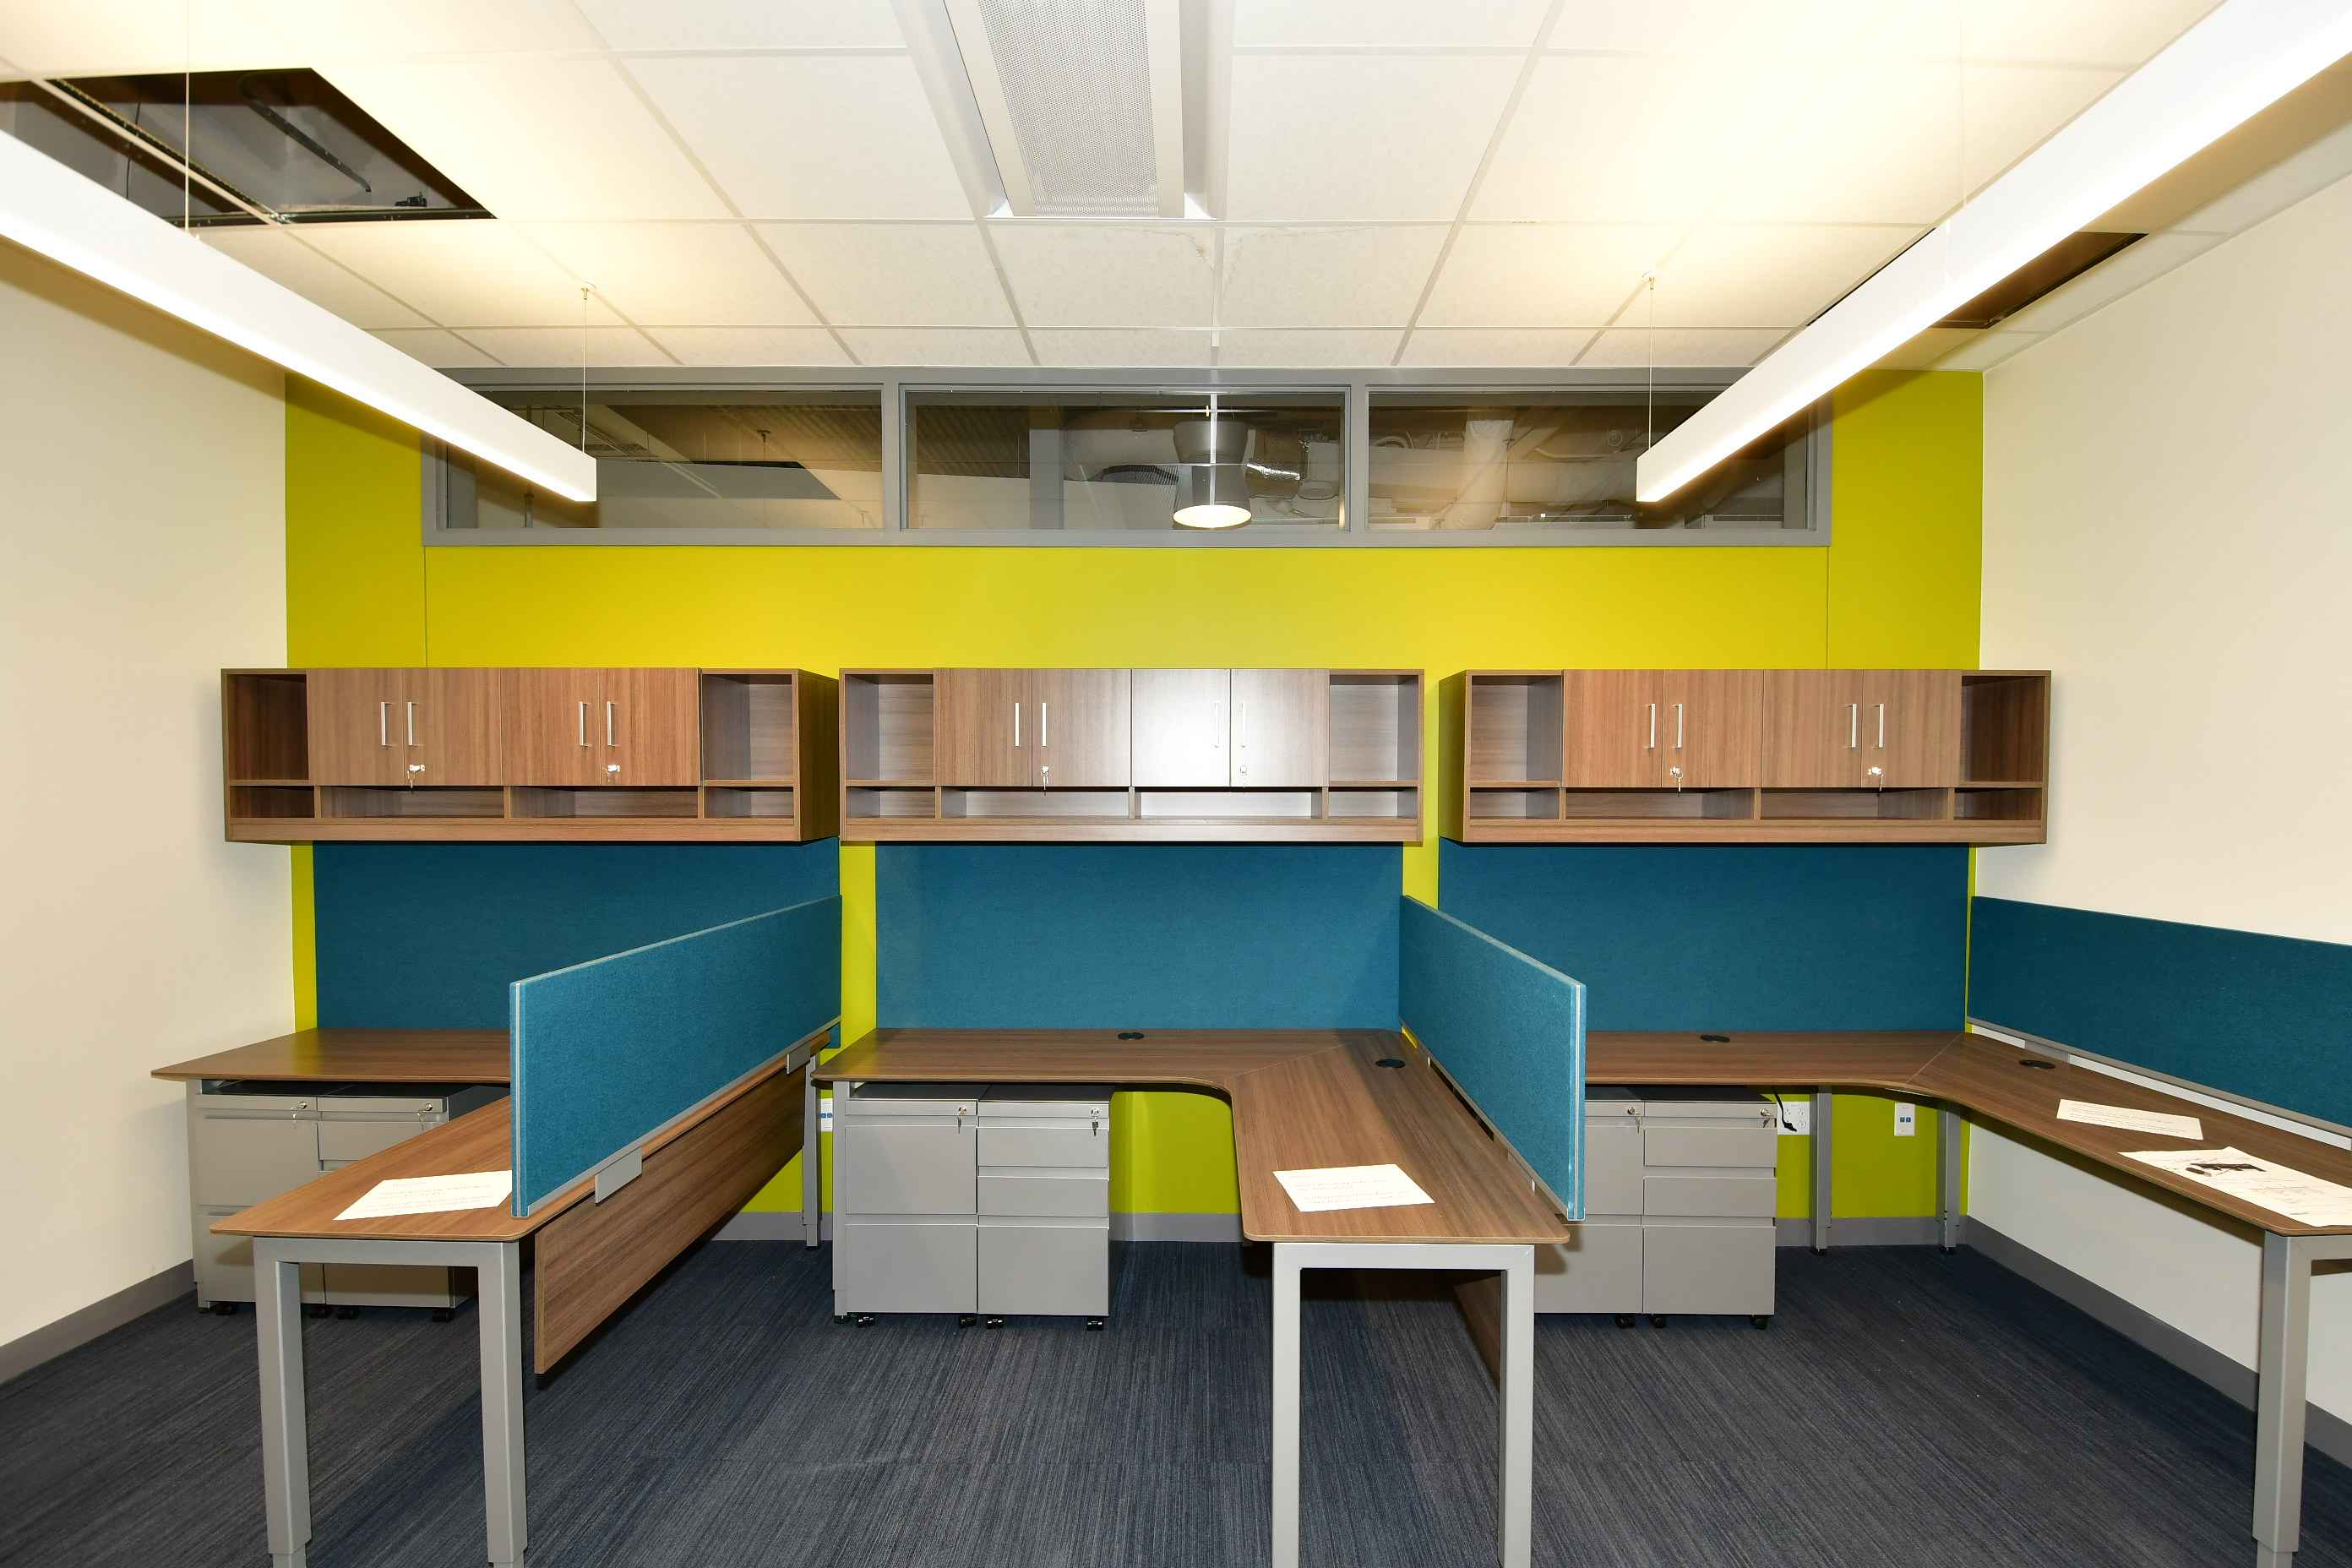 Highland Campus Phase 2 school-to-business incubator